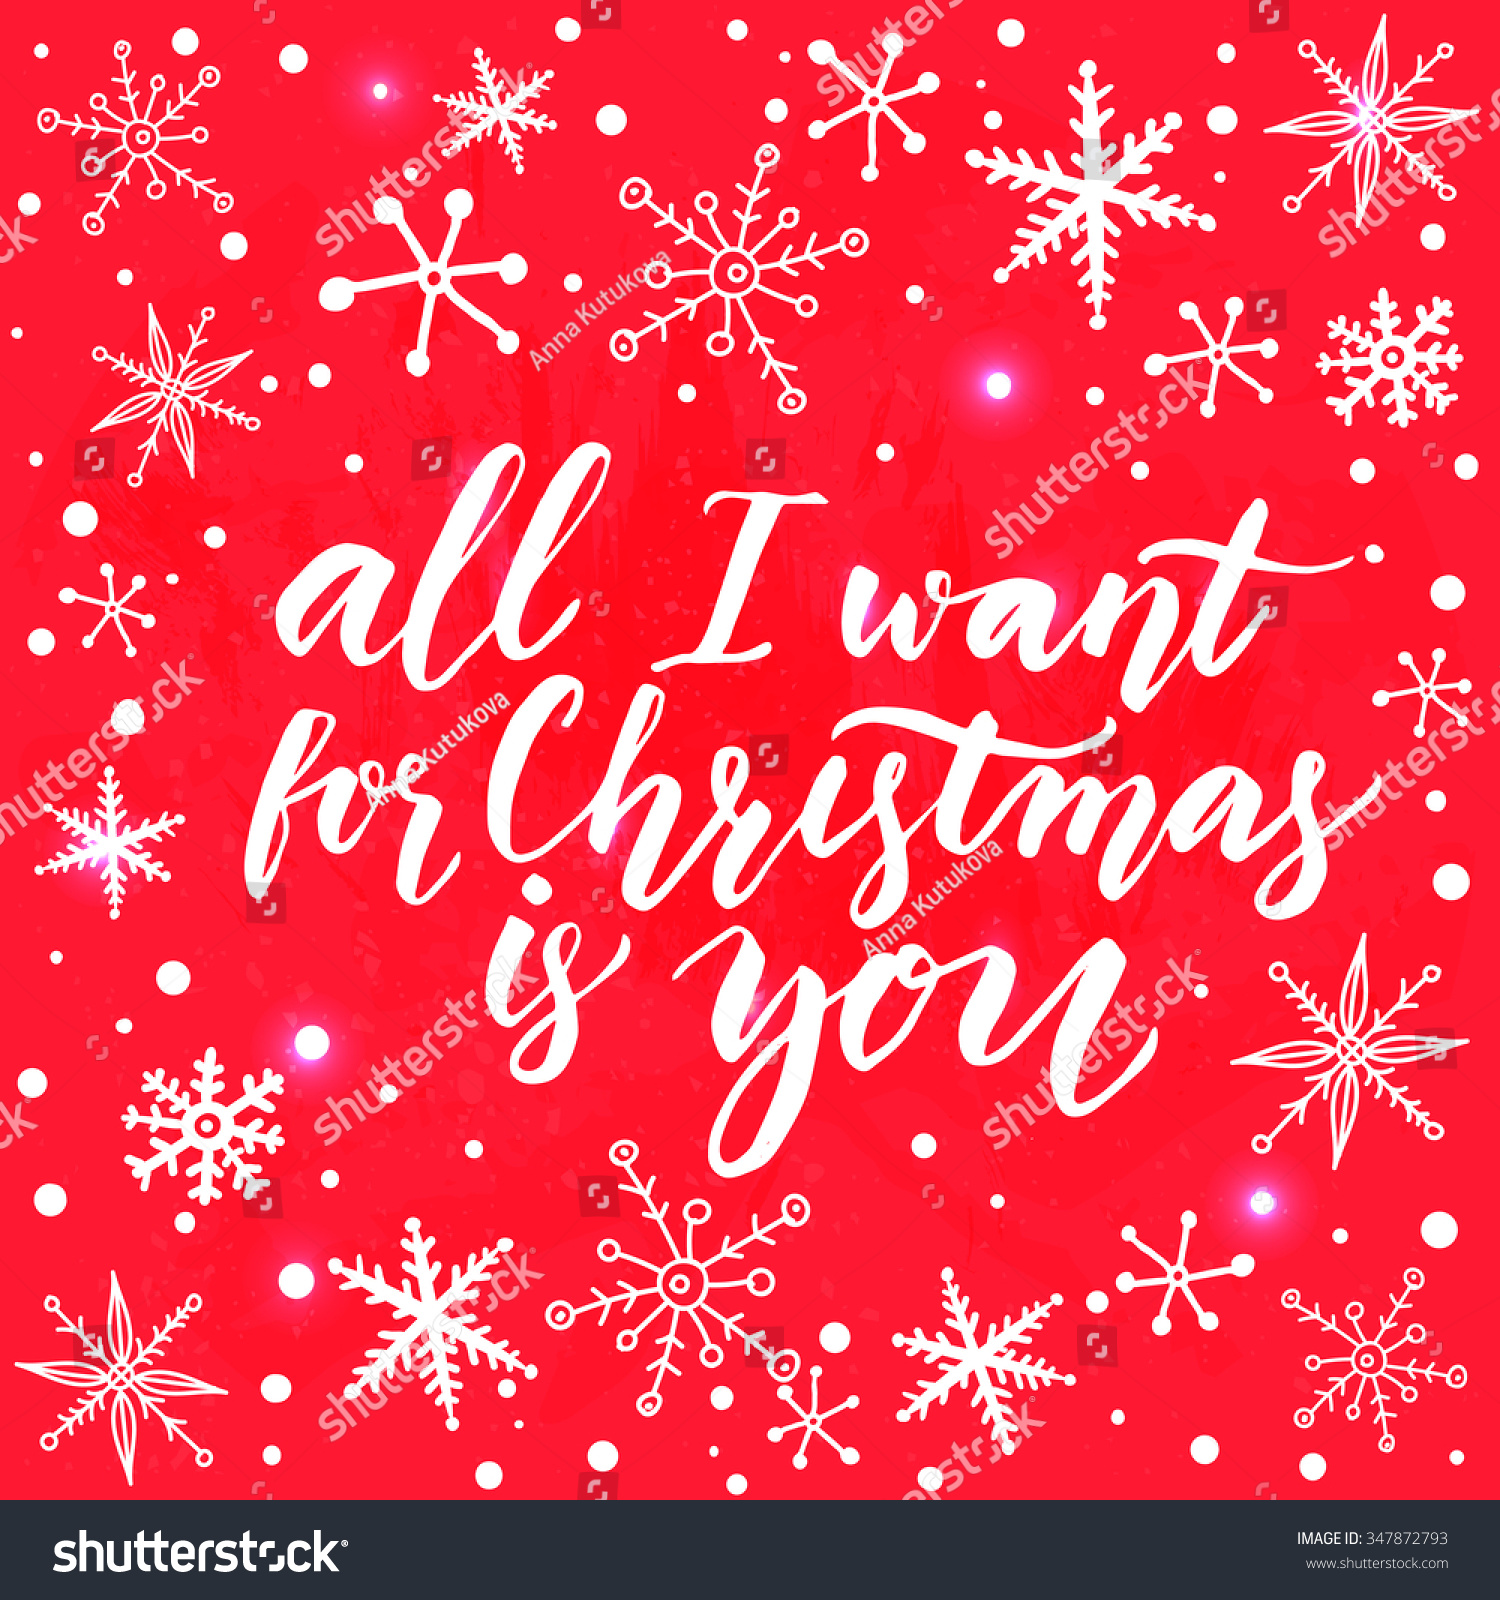 All Want Christmas You Inspirational Quote Stock Vector Royalty